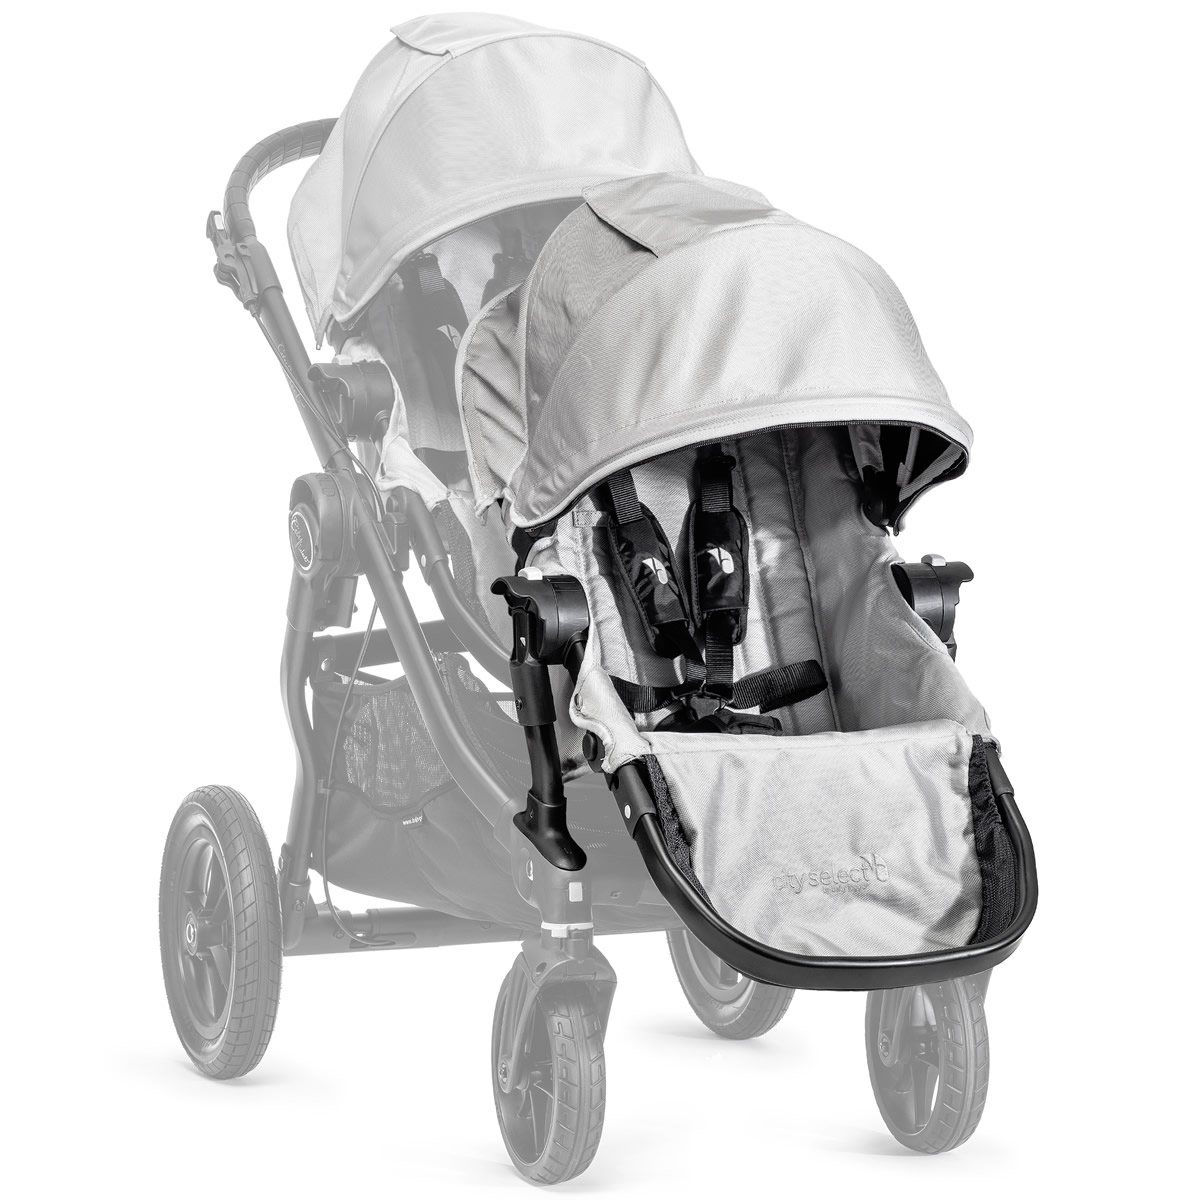 eee1daa6f46a Baby Jogger City Select Second Seat Kit - Silver